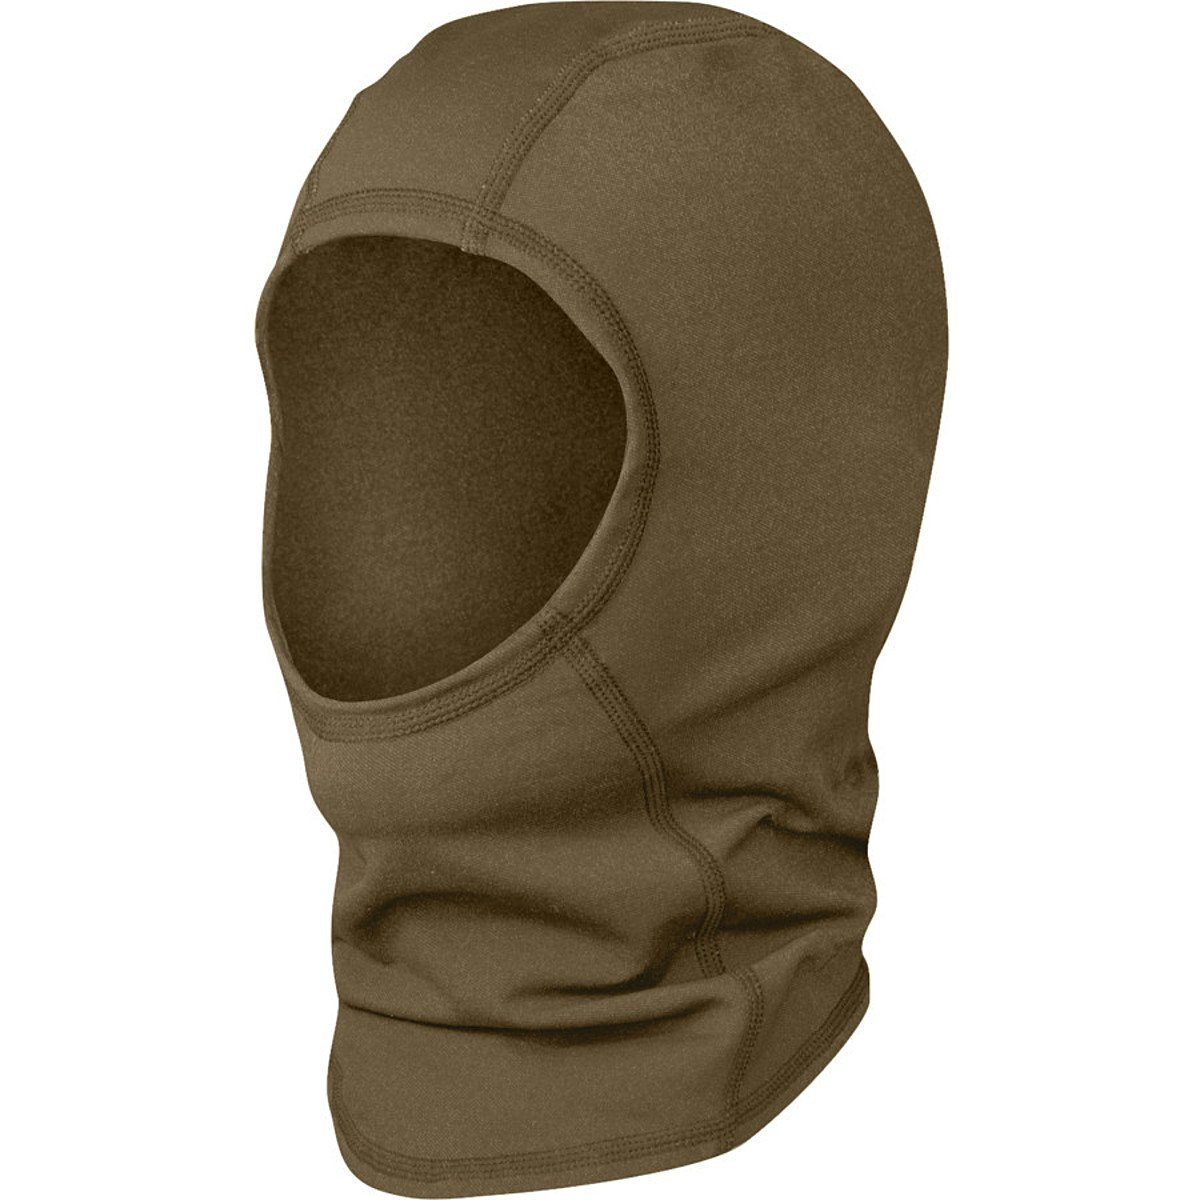 Outdoor Research Option Balaclava, Coyote, Large/X-Large